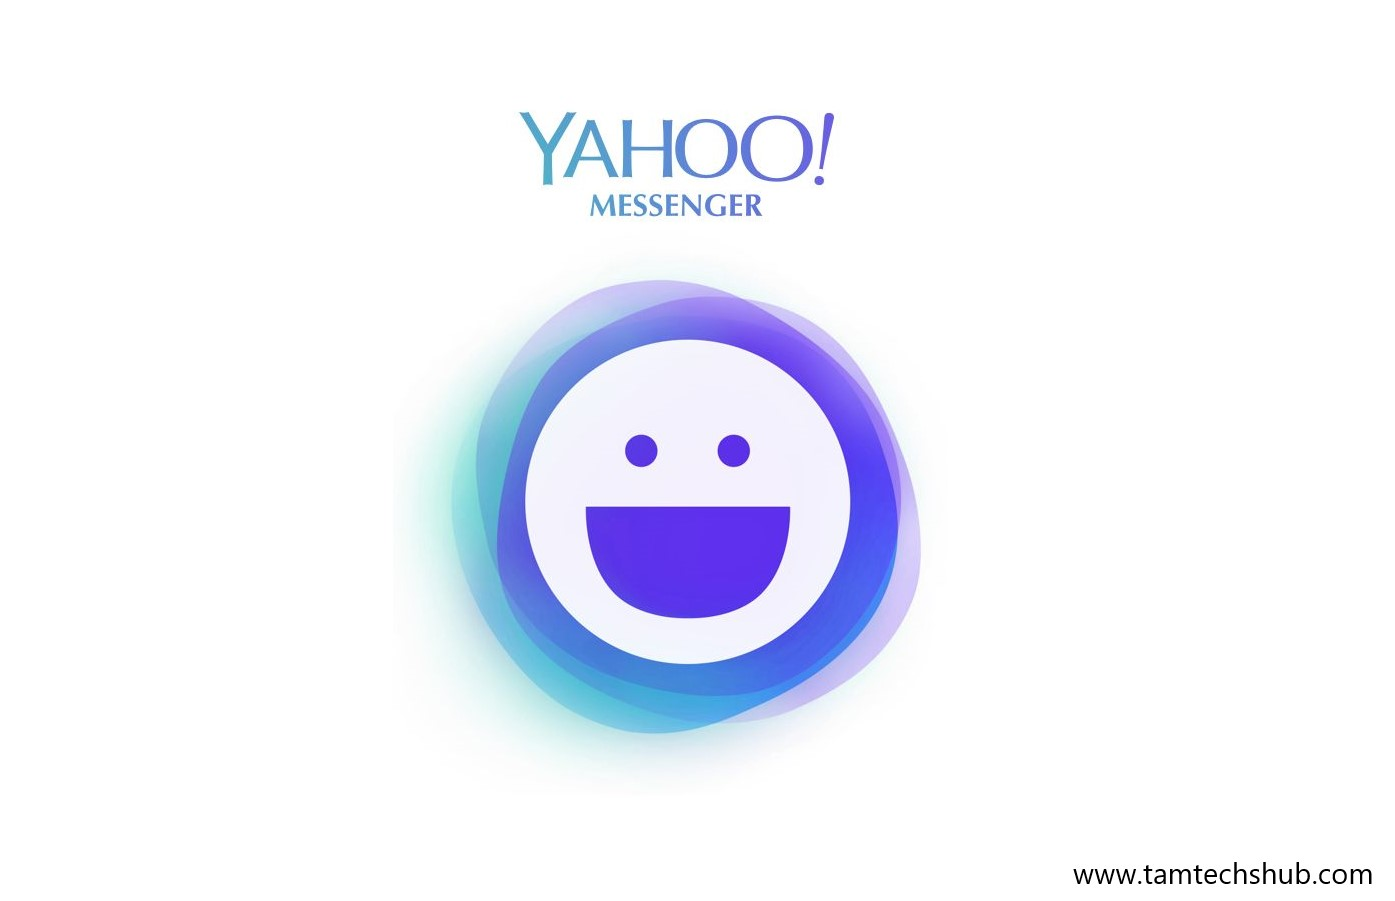 Why is Yahoo Messenger Going Away?